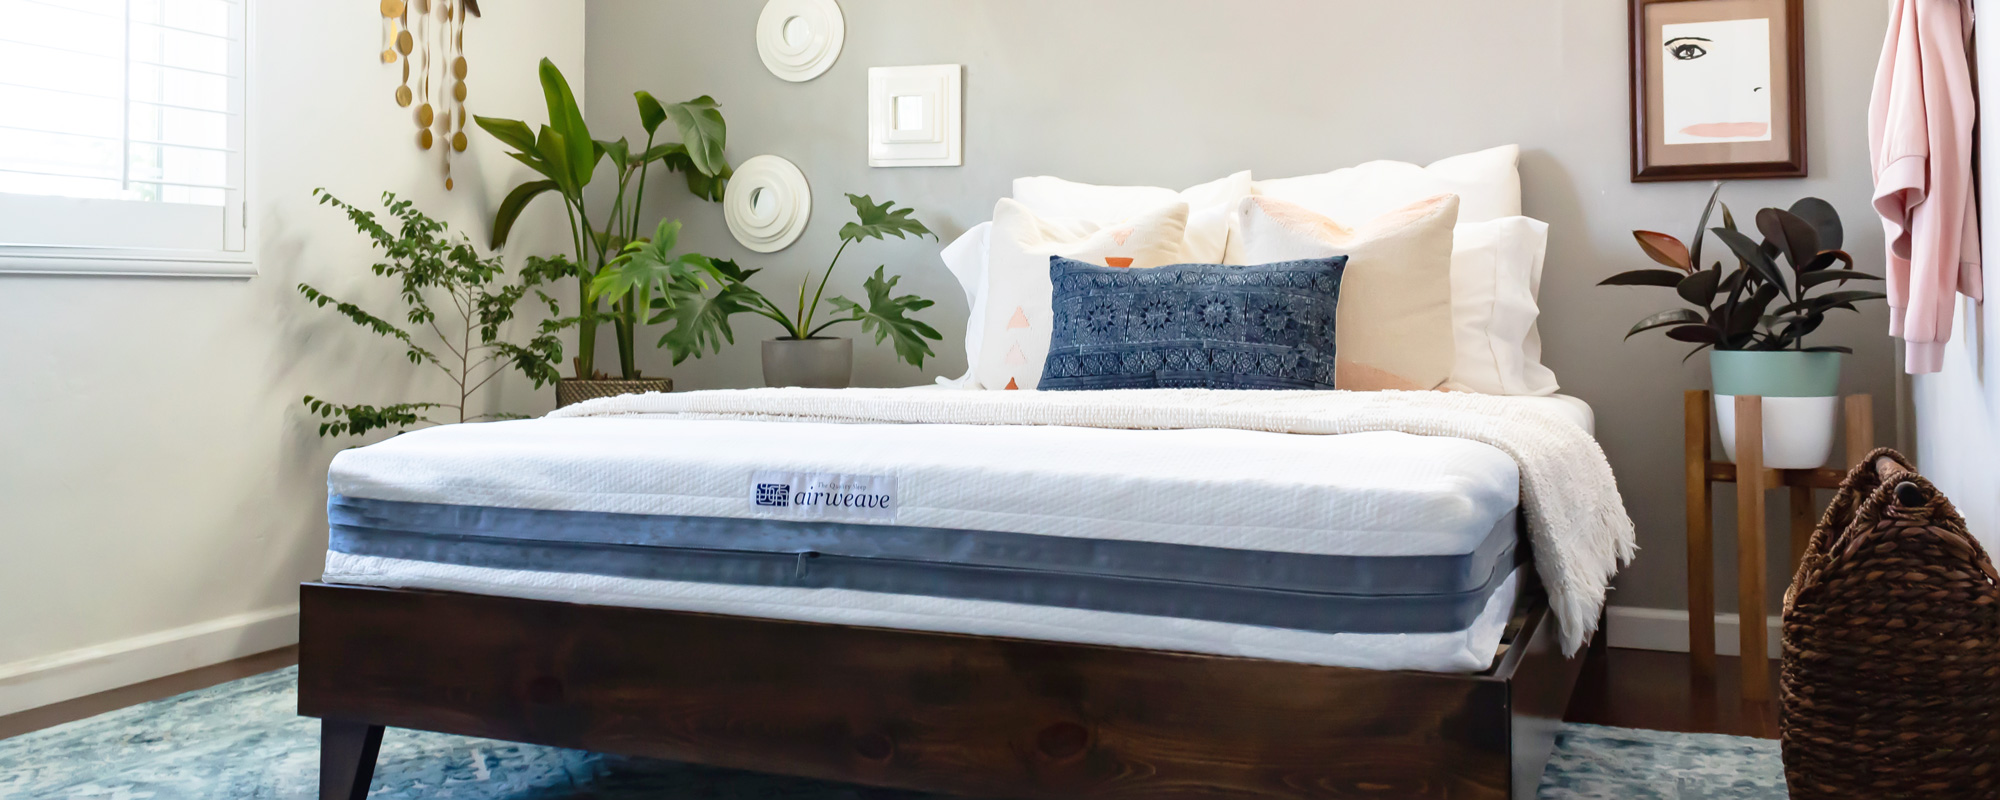 airweave mattress-KV